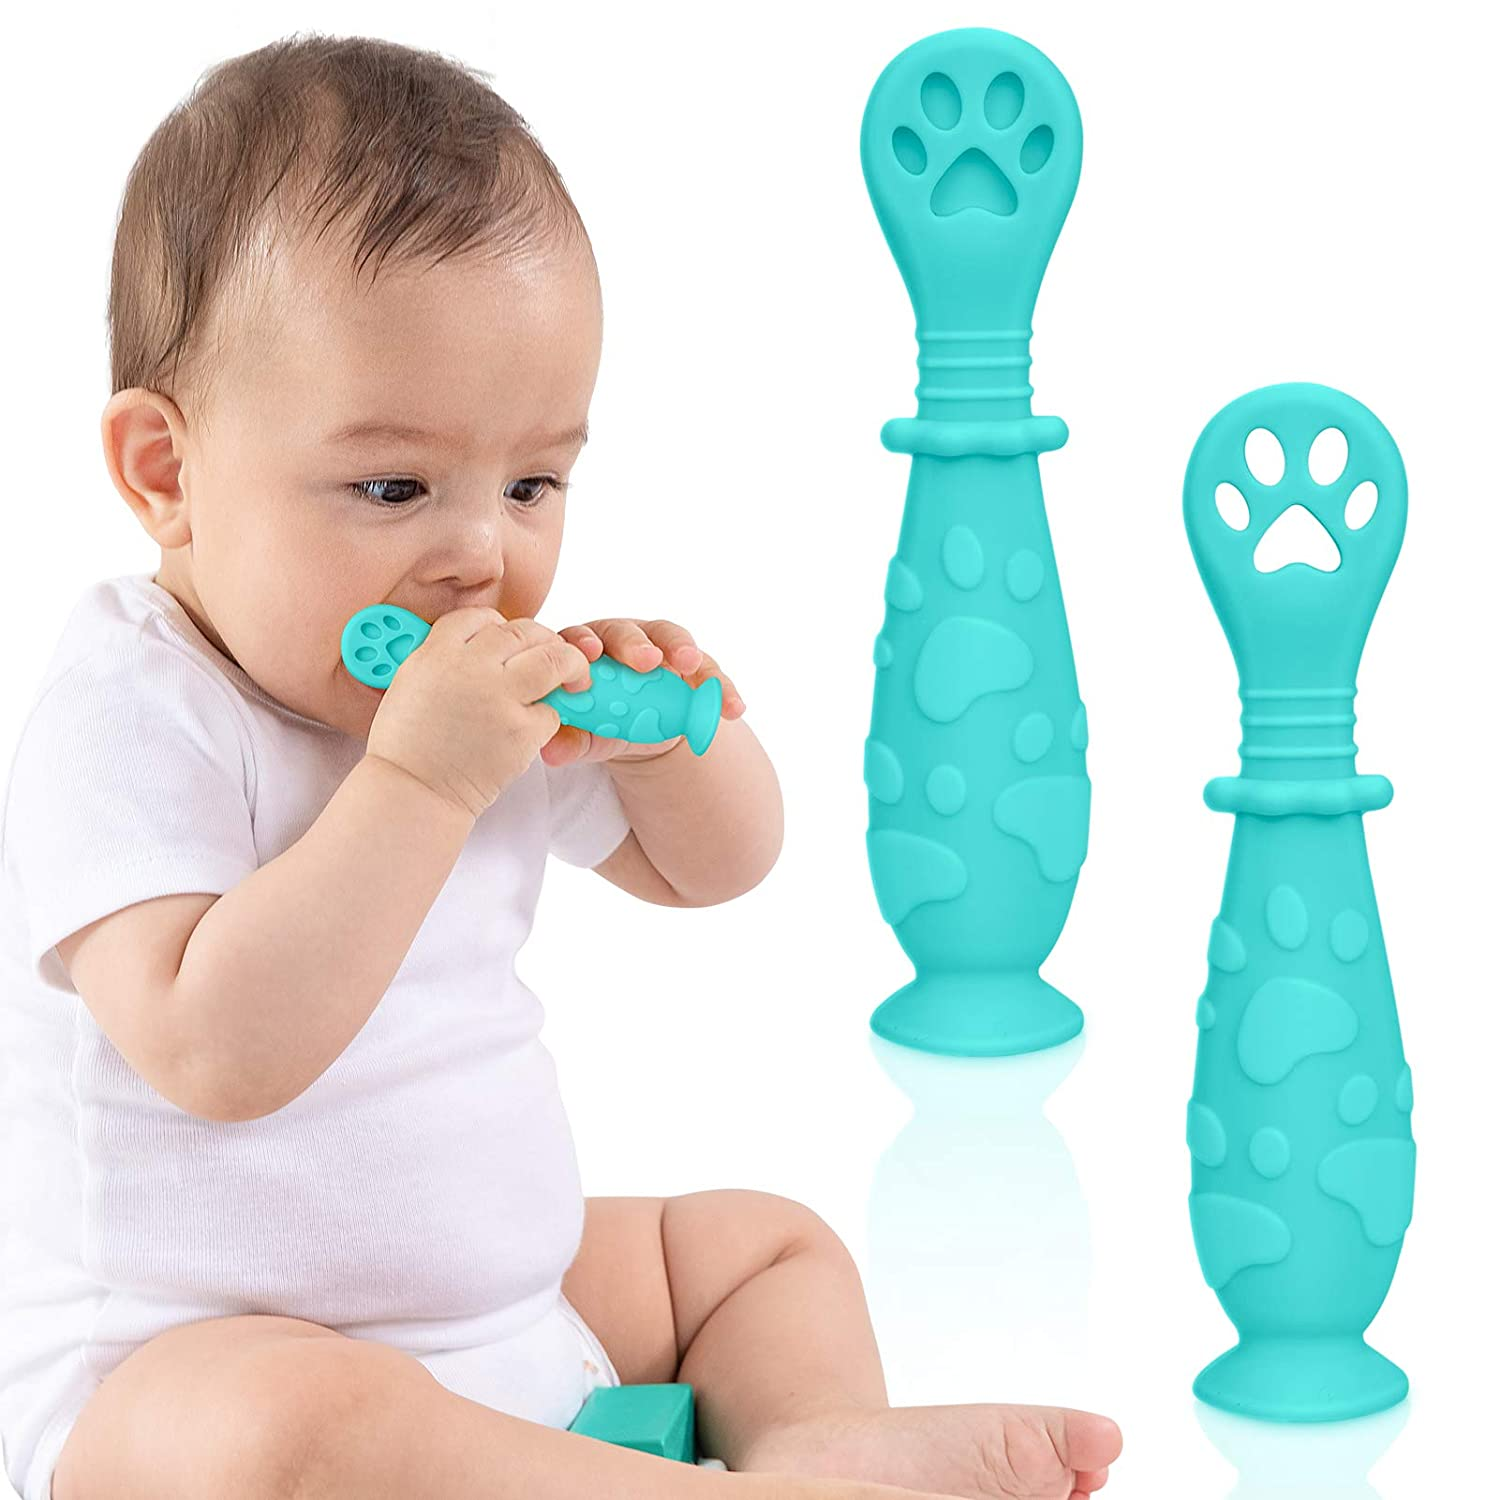 TitaCare BPA Free Silicone Baby Spoon Set for First Stage Self Feeding | 2-Pack Pre Spoon Utensil | Toddler Utensils for Baby Led Weaning (Blue)